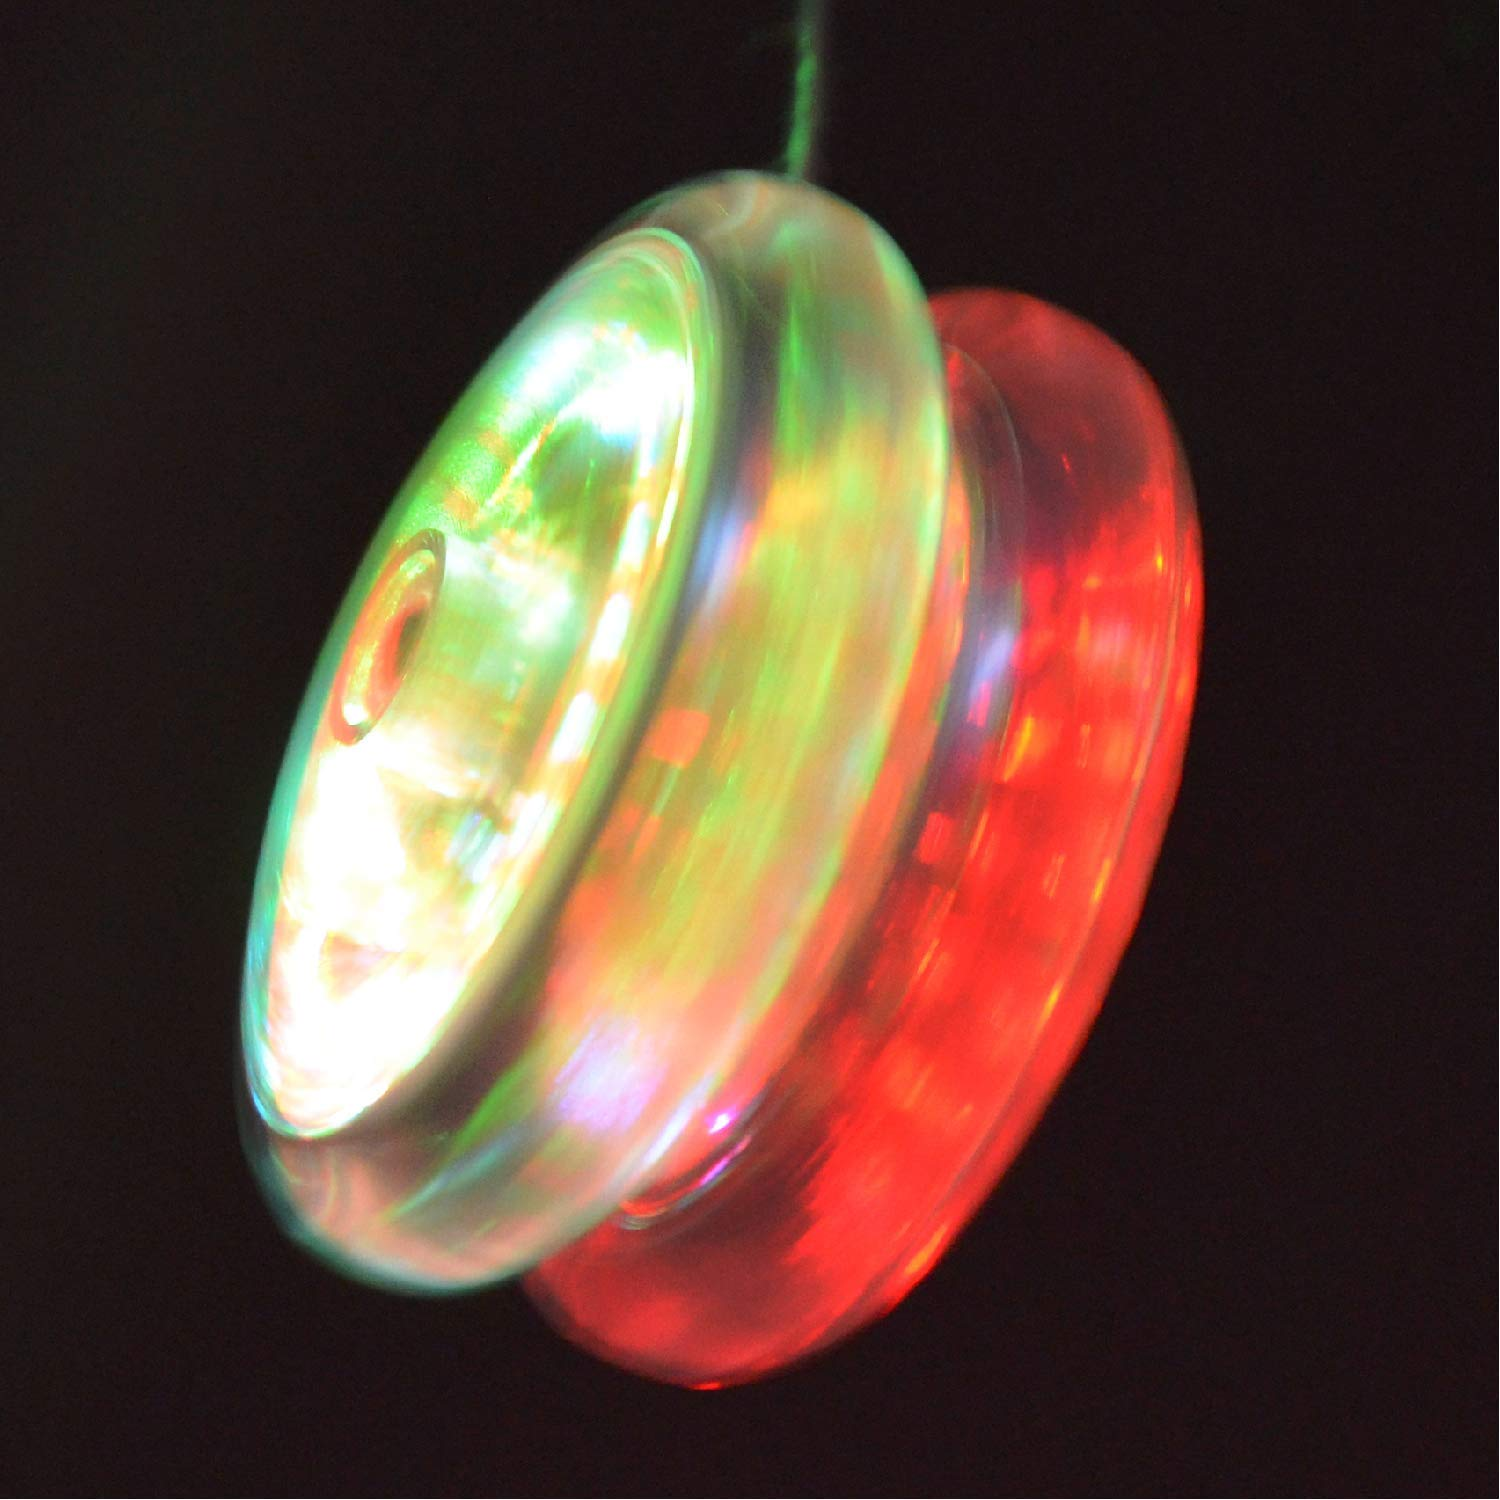 Yomega Spectrum – Light up Fireball Transaxle YoYo with LED Lights for Intermediate, Advanced and Pro Level String Trick Play + Extra 2 Strings & 3 Month Warranty (Blue) by Yomega (Image #7)